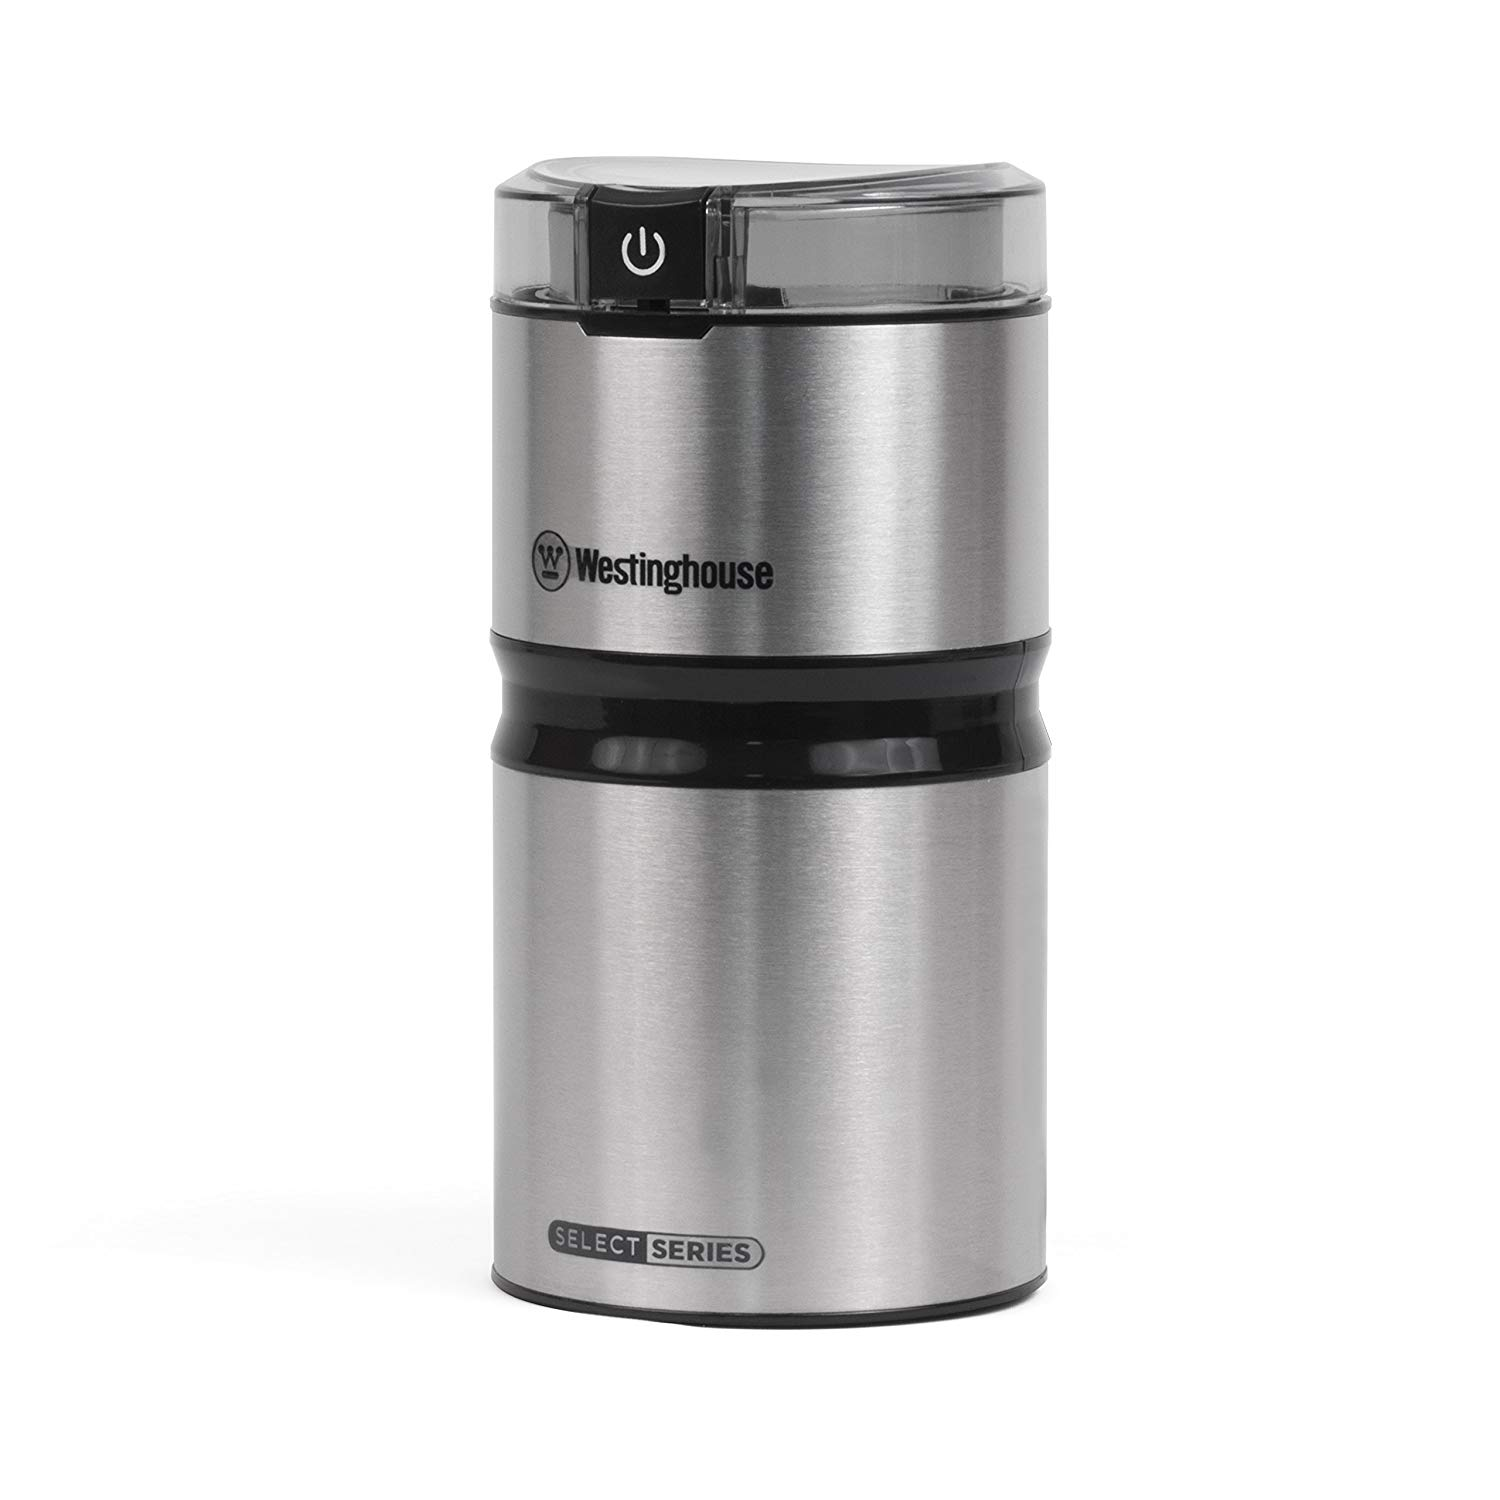 Westinghouse select series stainless steel electric coffee and spice grinder